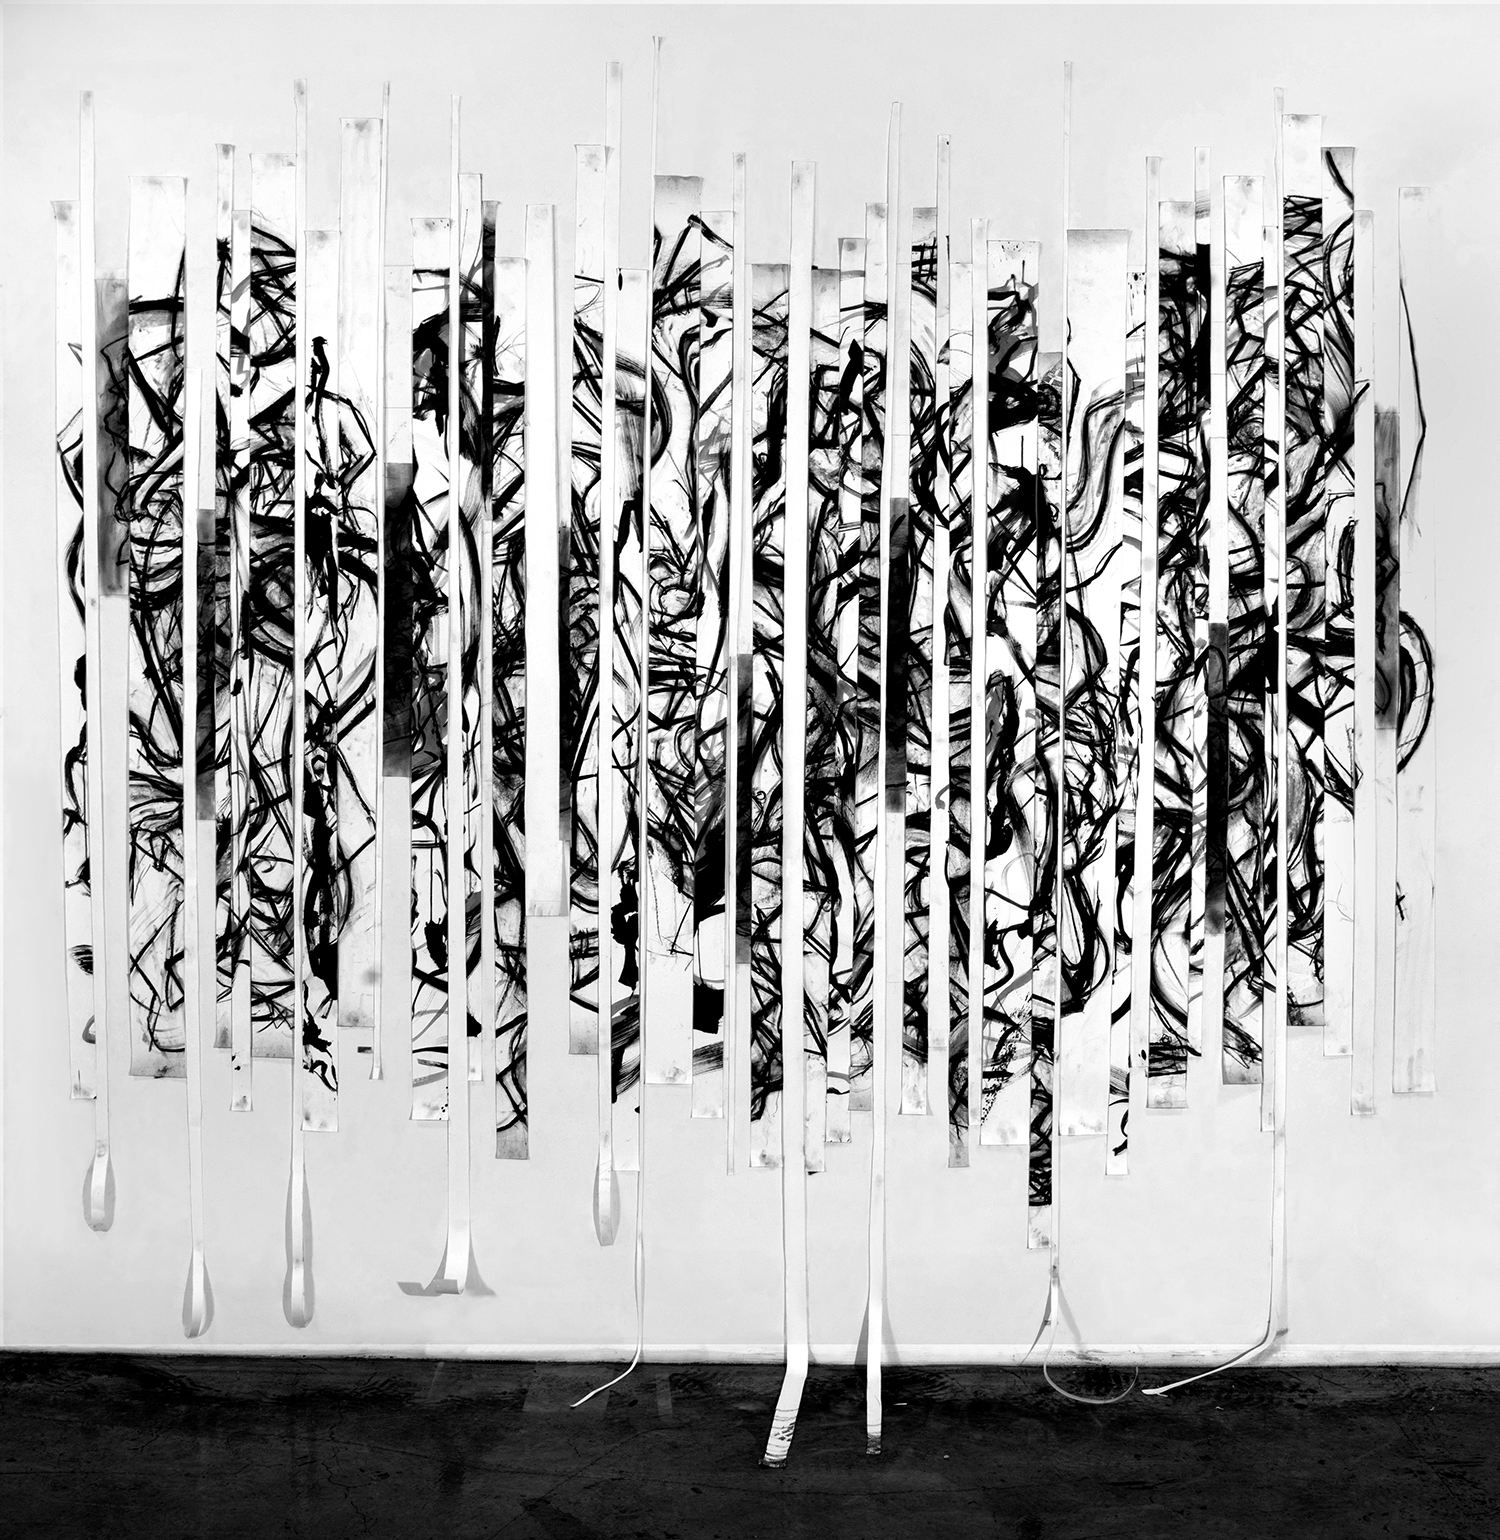 Sequence, 2016, Charcoal on paper, approx. 100 x 120 in.